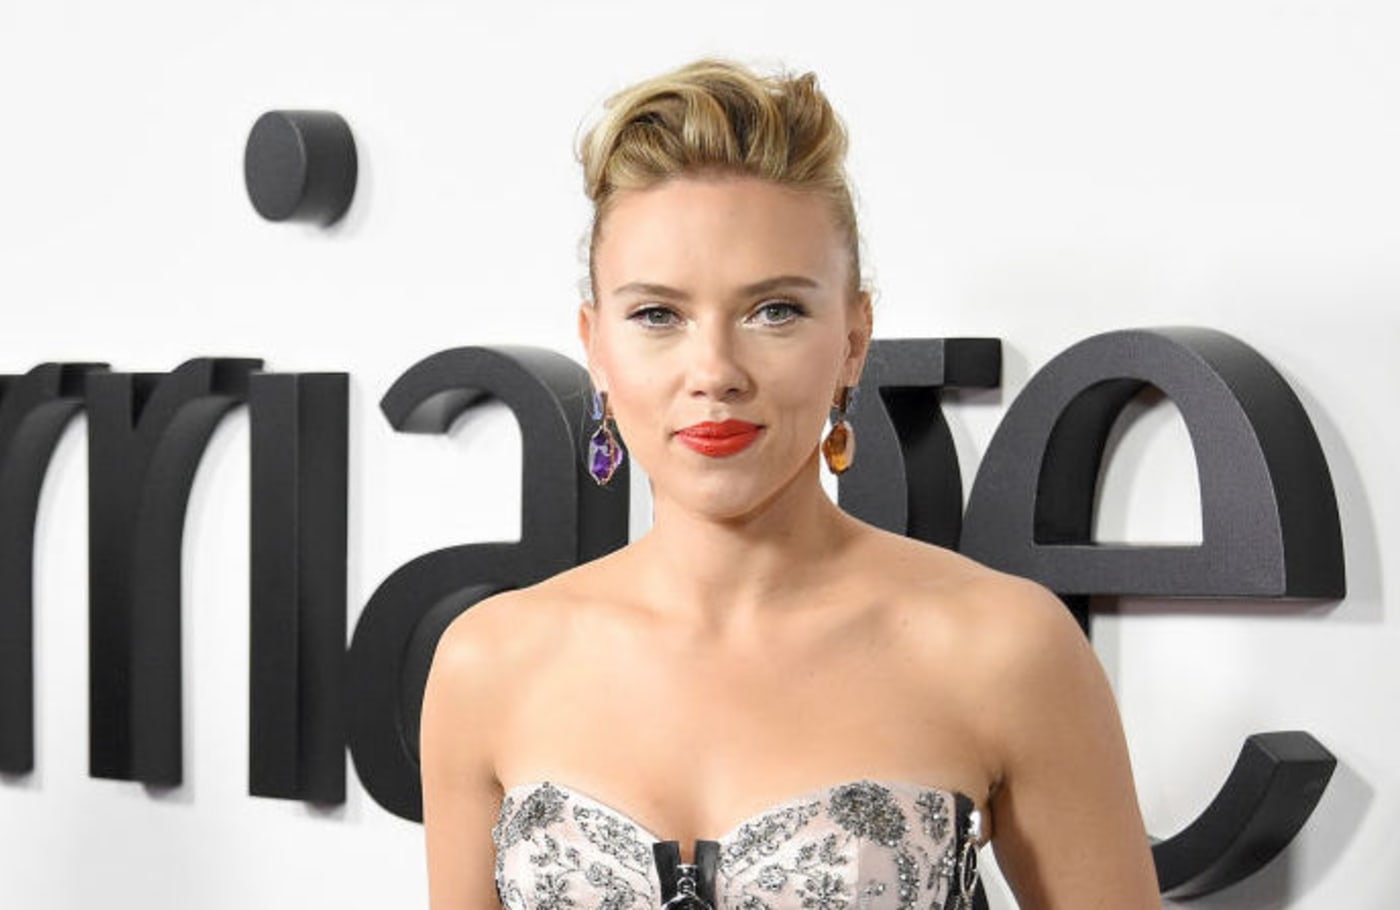 This is a picture of Scarlett Johansson.